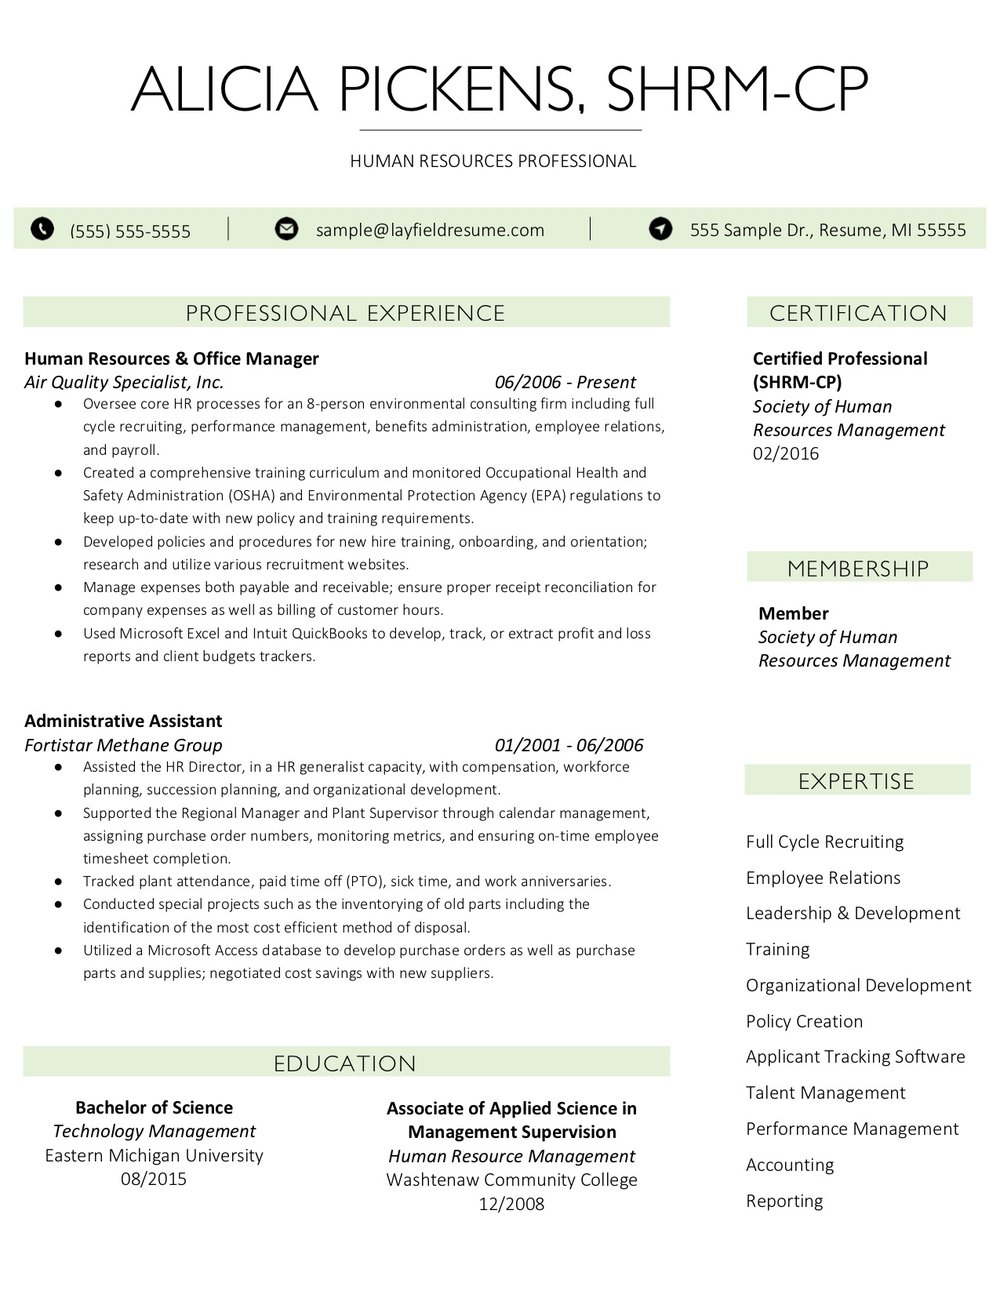 Client Resume #29. Click to enlarge.